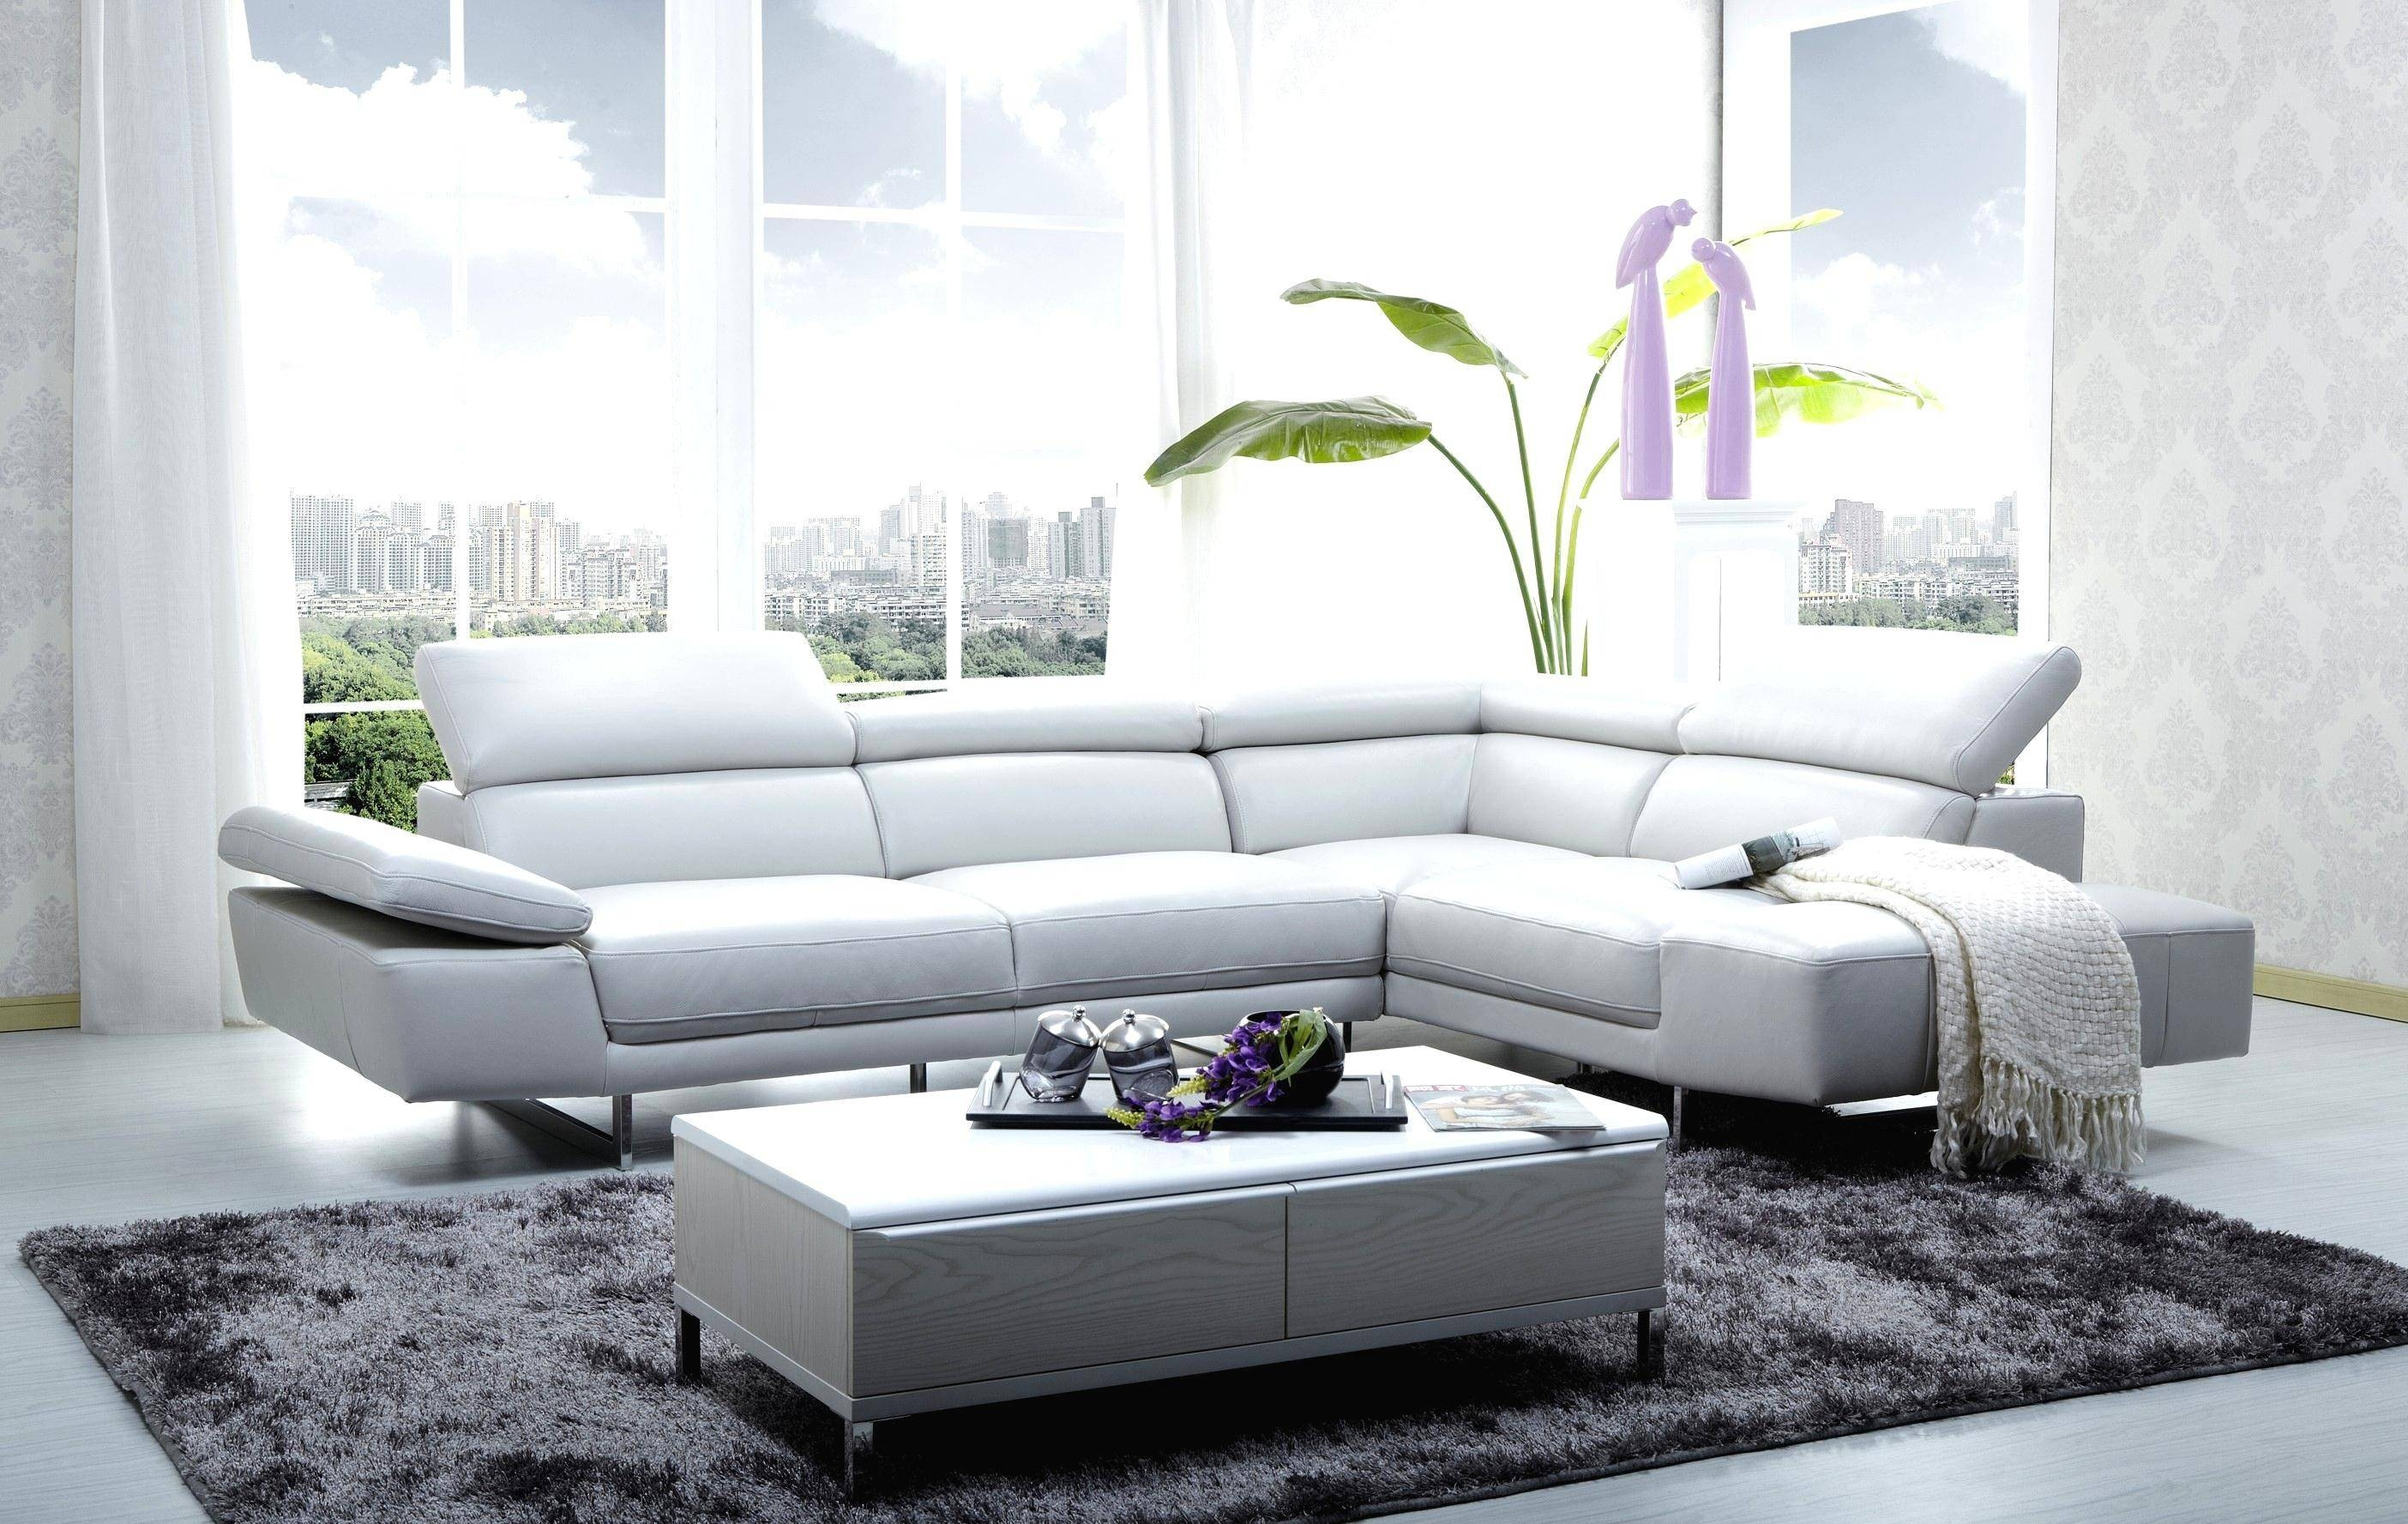 High End Sectional Sofas - Tourdecarroll pertaining to High End Leather Sectional Sofa (Image 19 of 25)